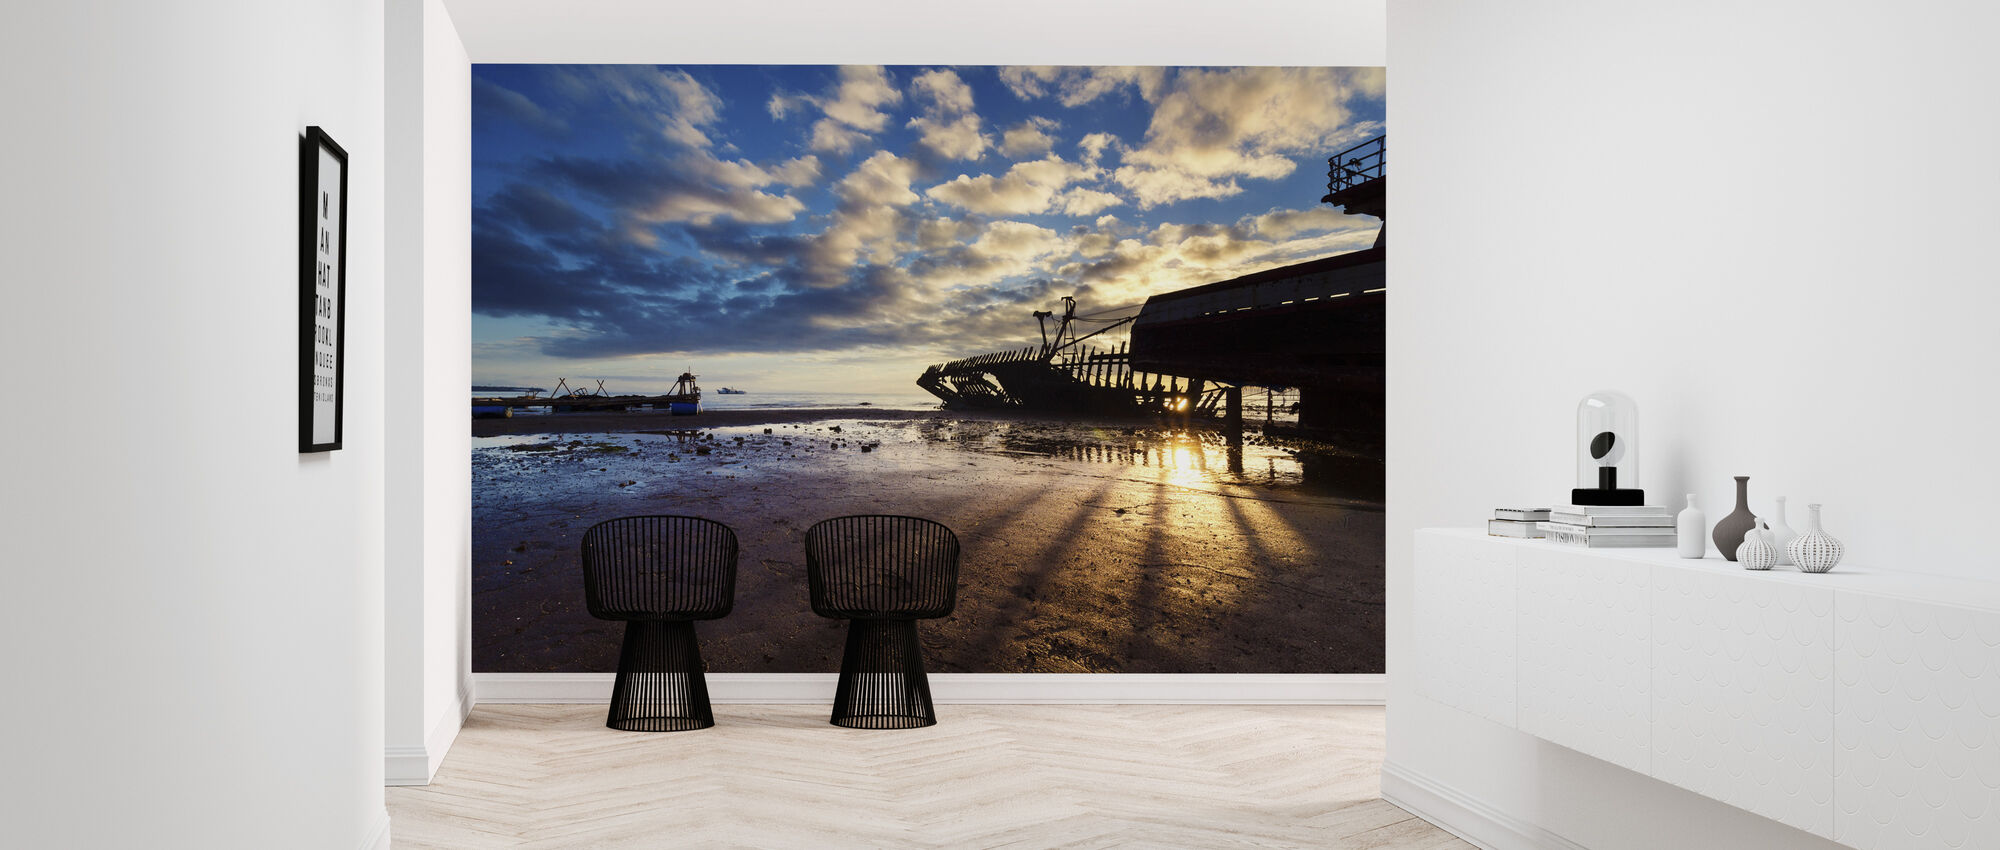 Shipwreck Silhouettes and Sunrise - Wallpaper - Hallway